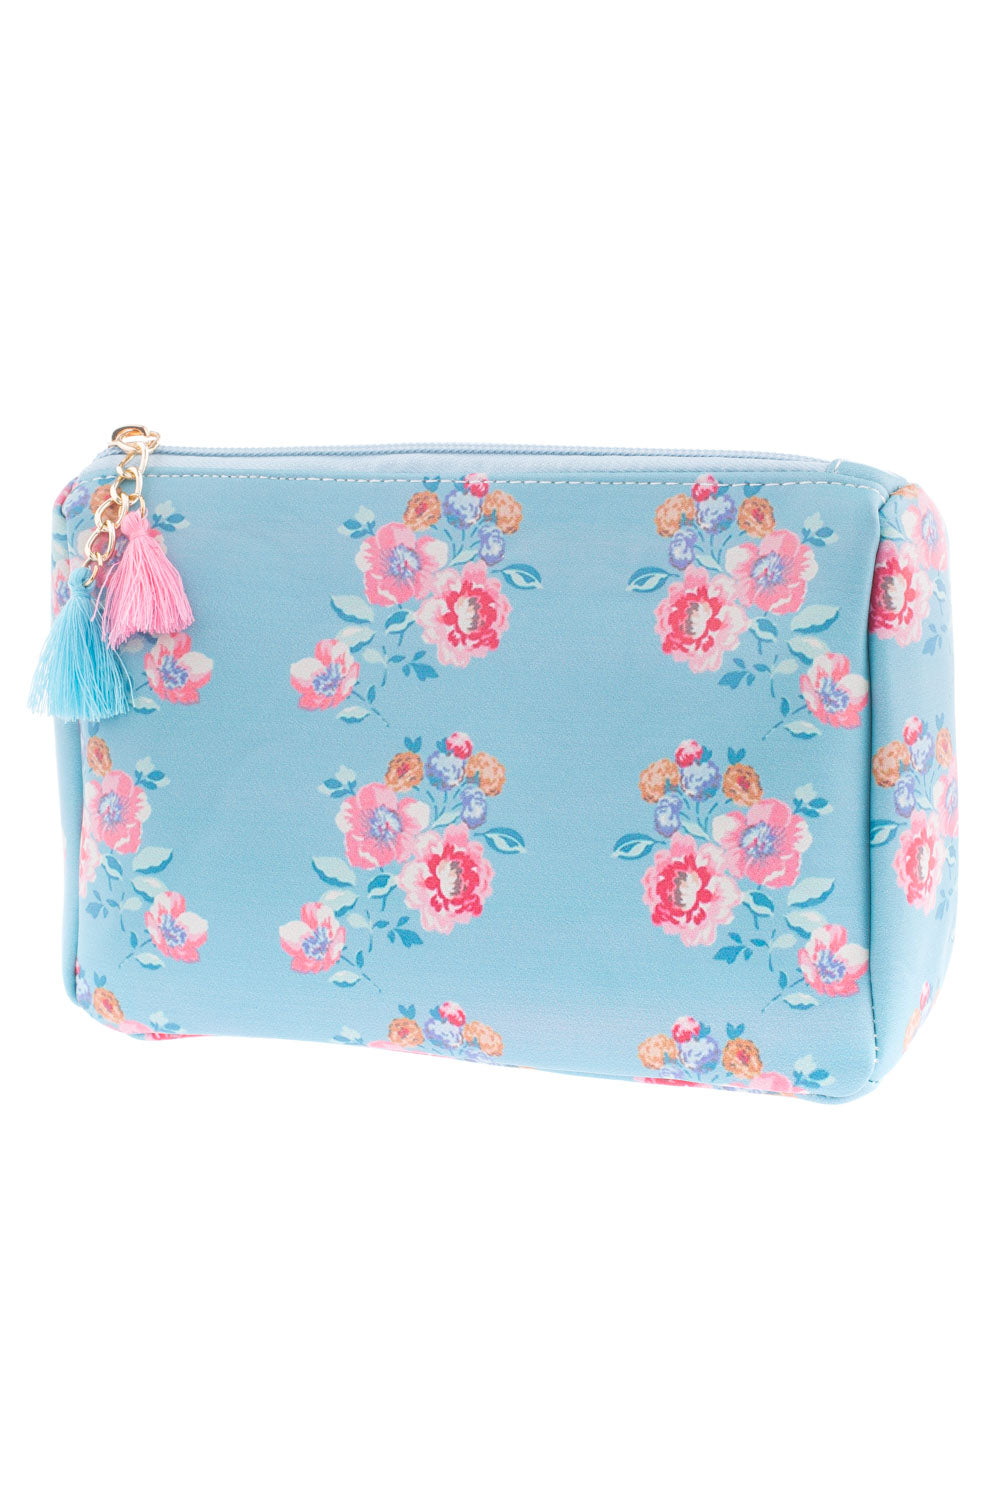 Type 2 To A Wild Rose Cosmetic Bag